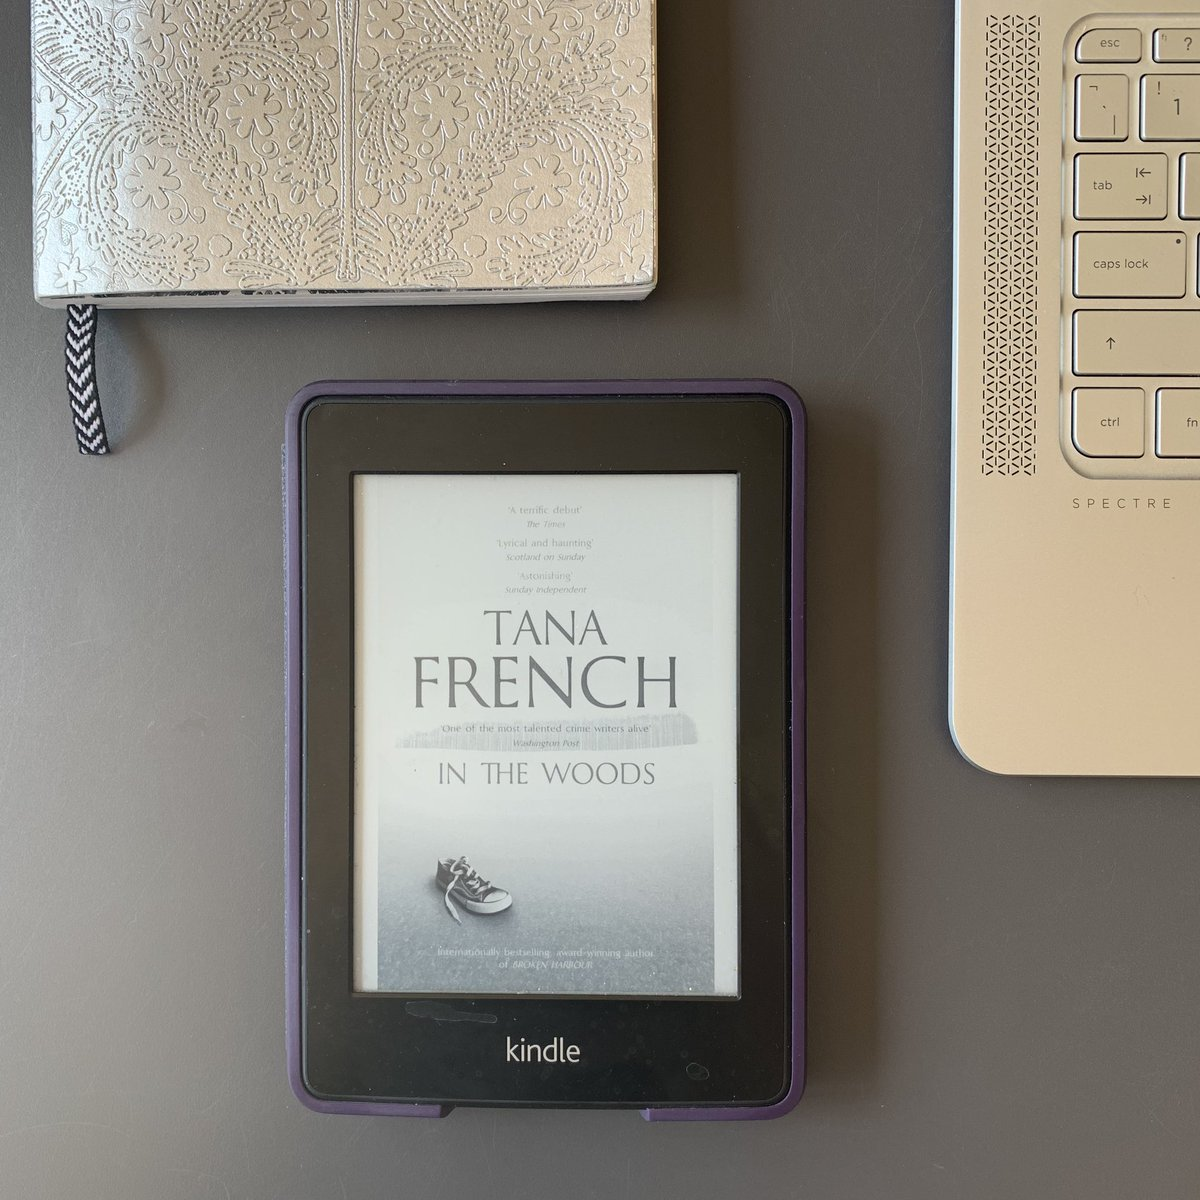 This week I read #IntheWoods by Tana French. It was pretty harrowing, quite glad it's over tbh #booklover